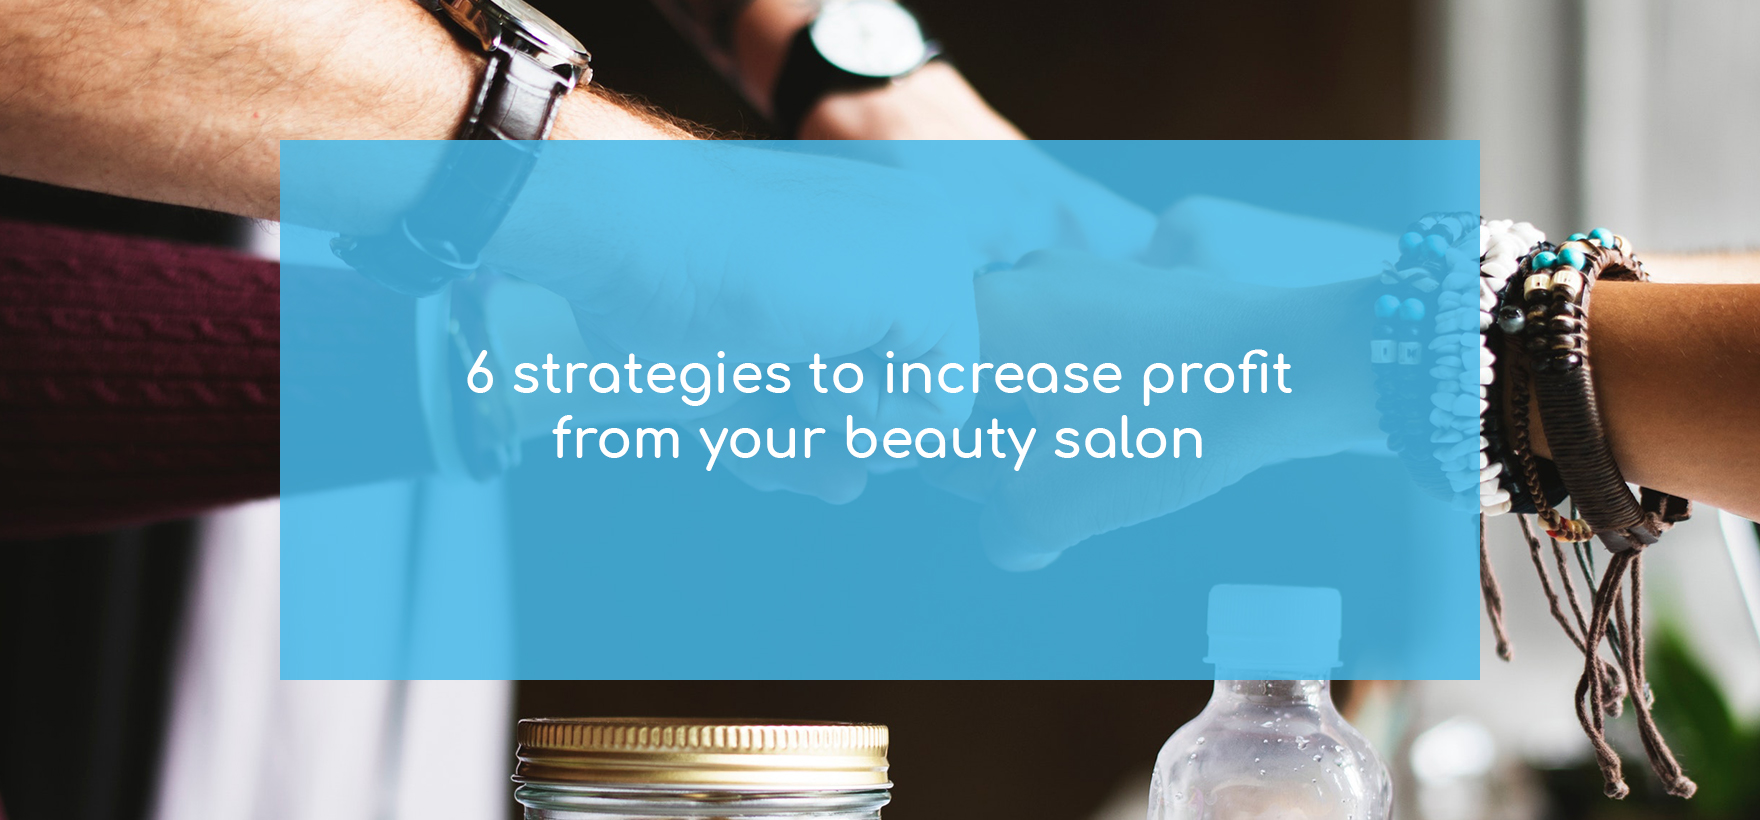 6 strategies to increase profit from your beauty salon